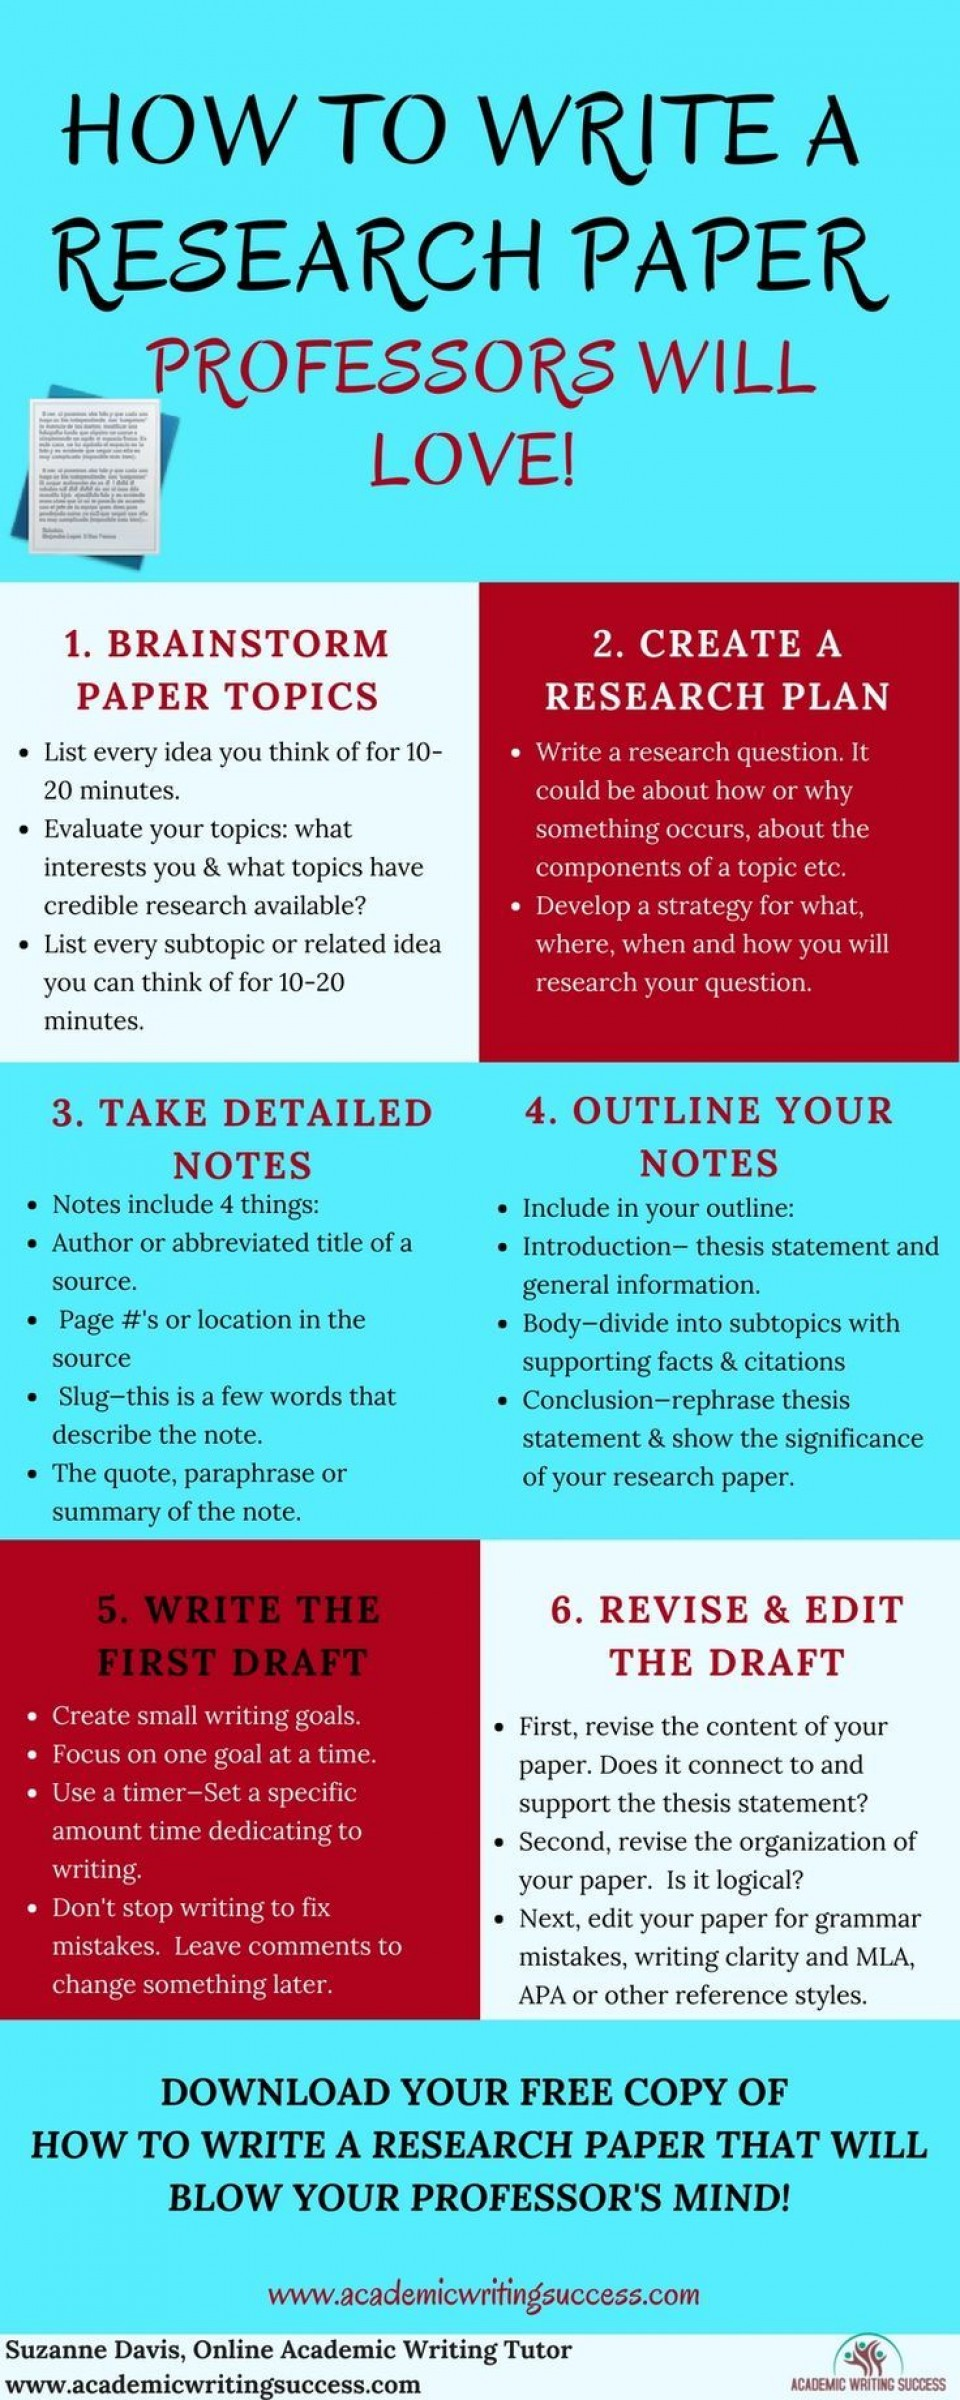 012 Research Paper Tips For Writing Unforgettable Papers A History Fast Quickly 960